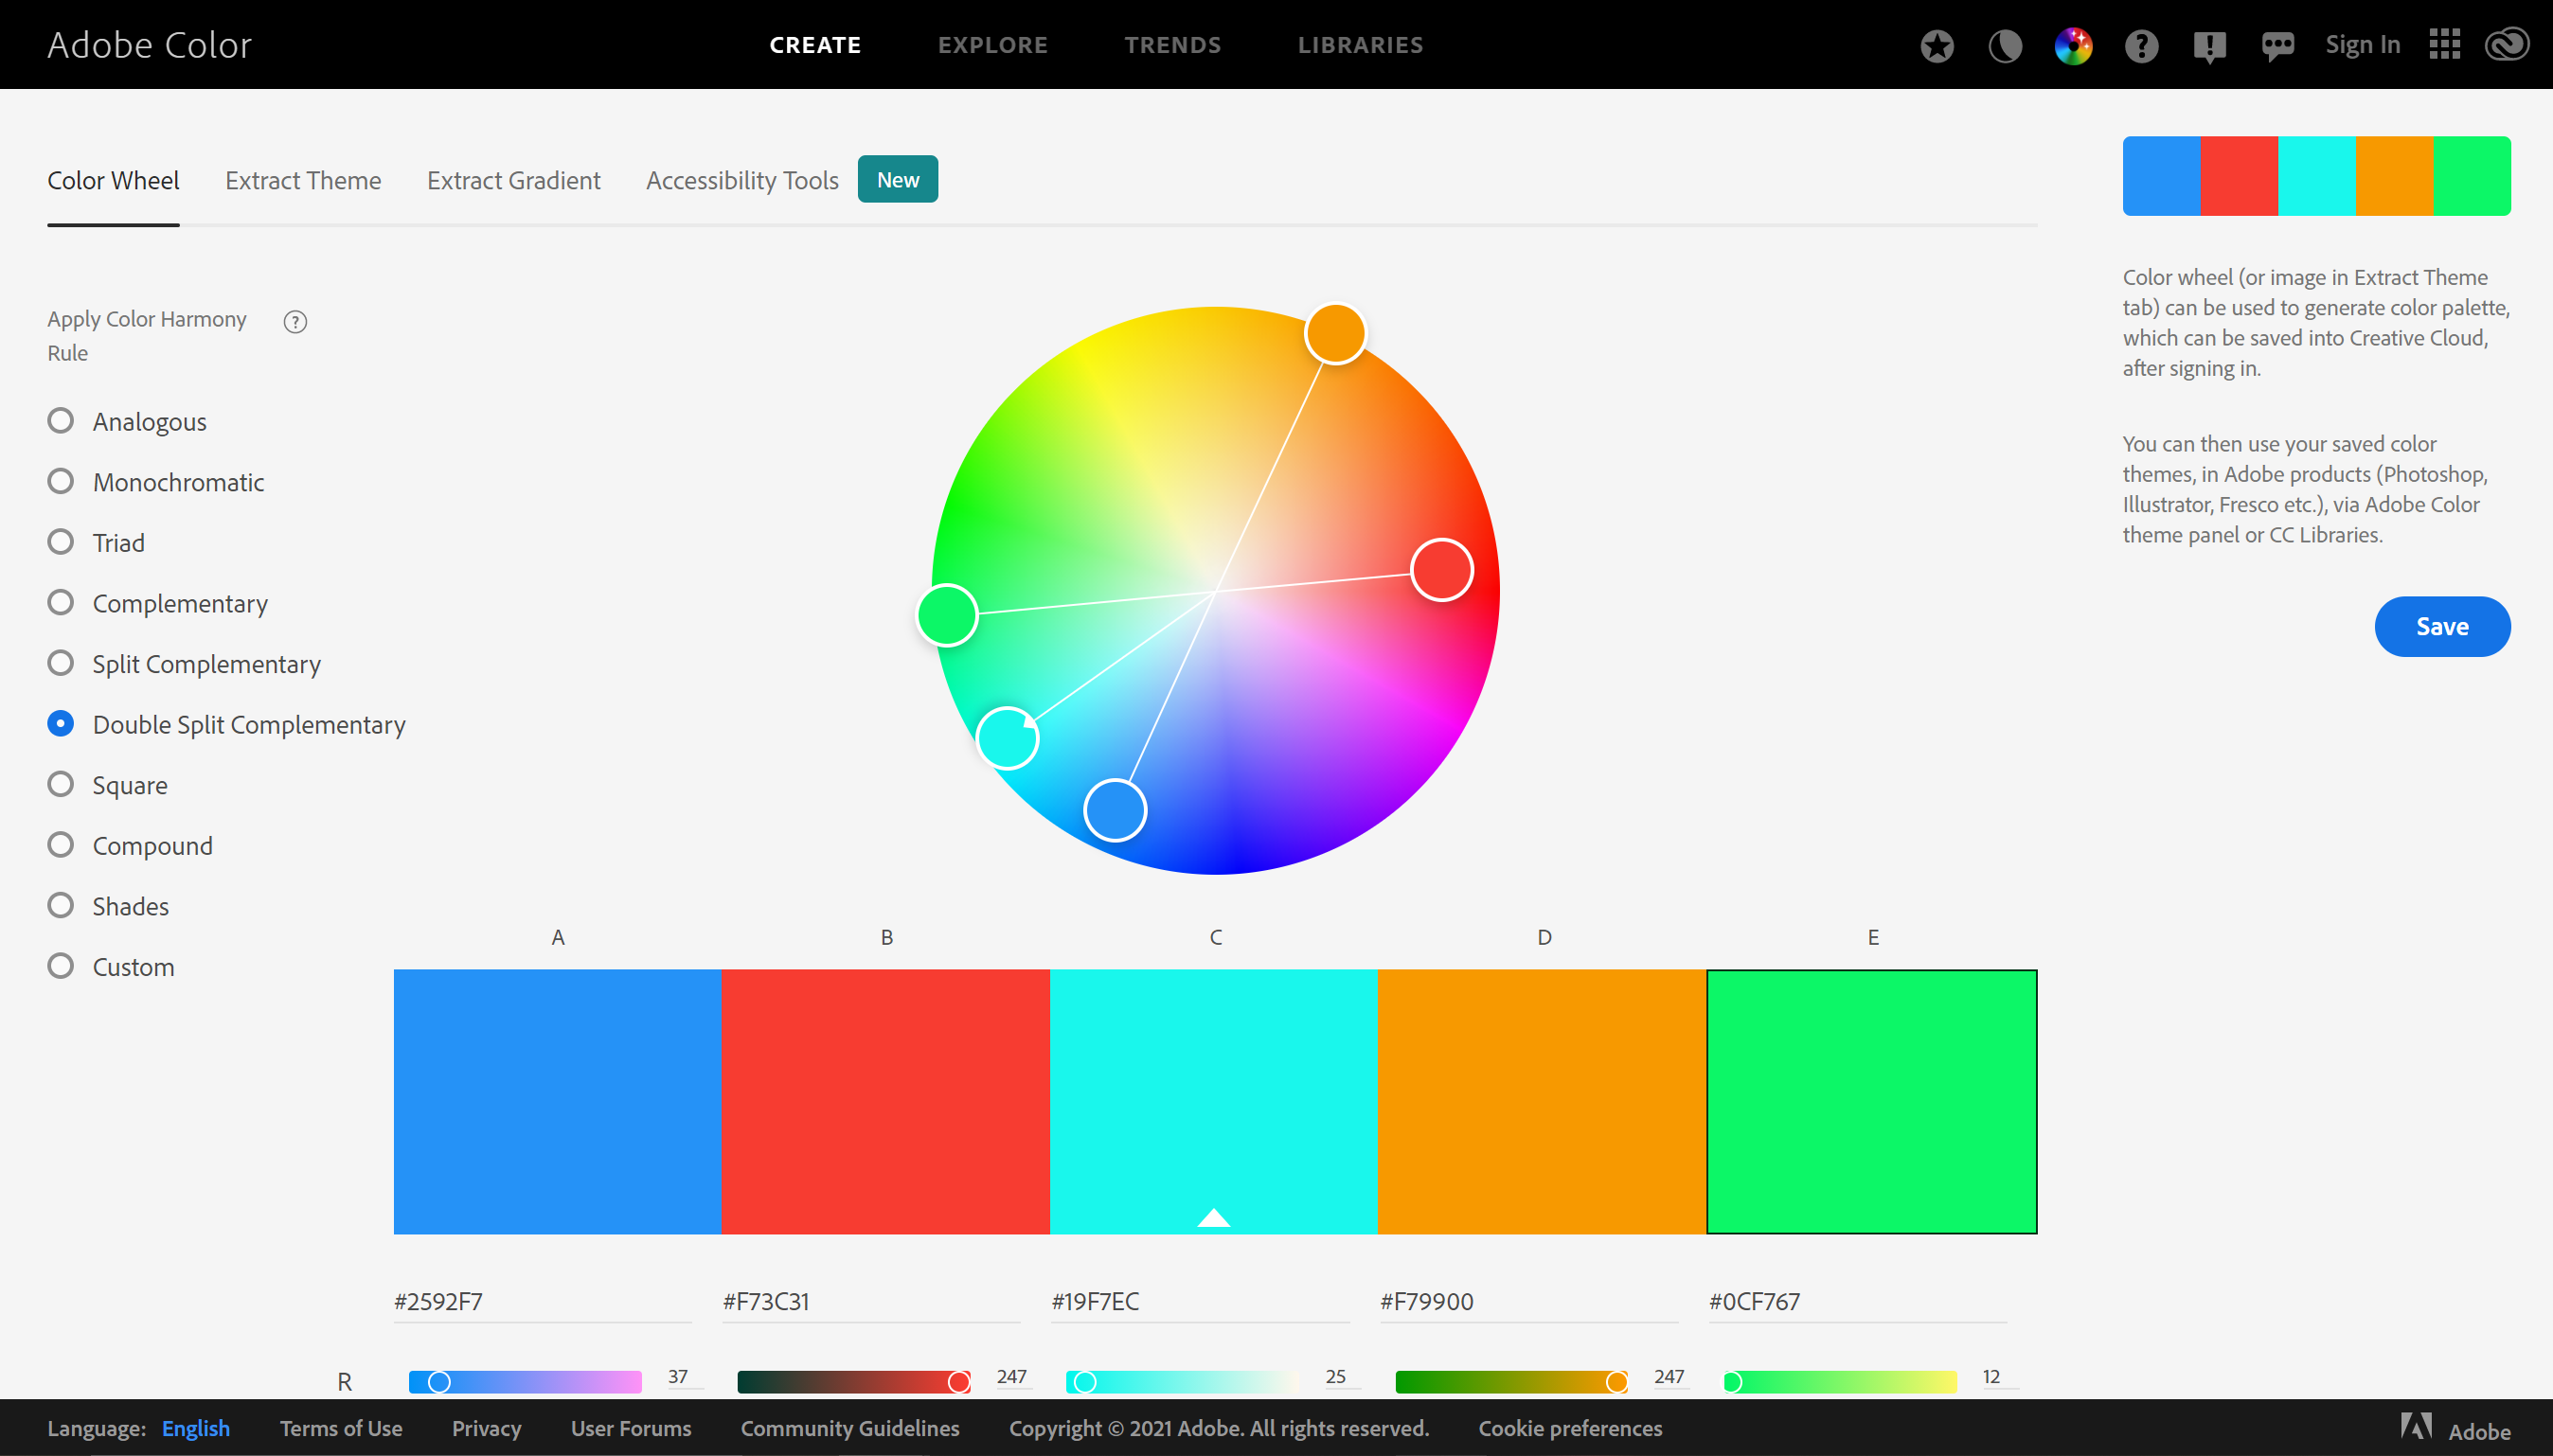 adobe color webpage with an interactive color wheel